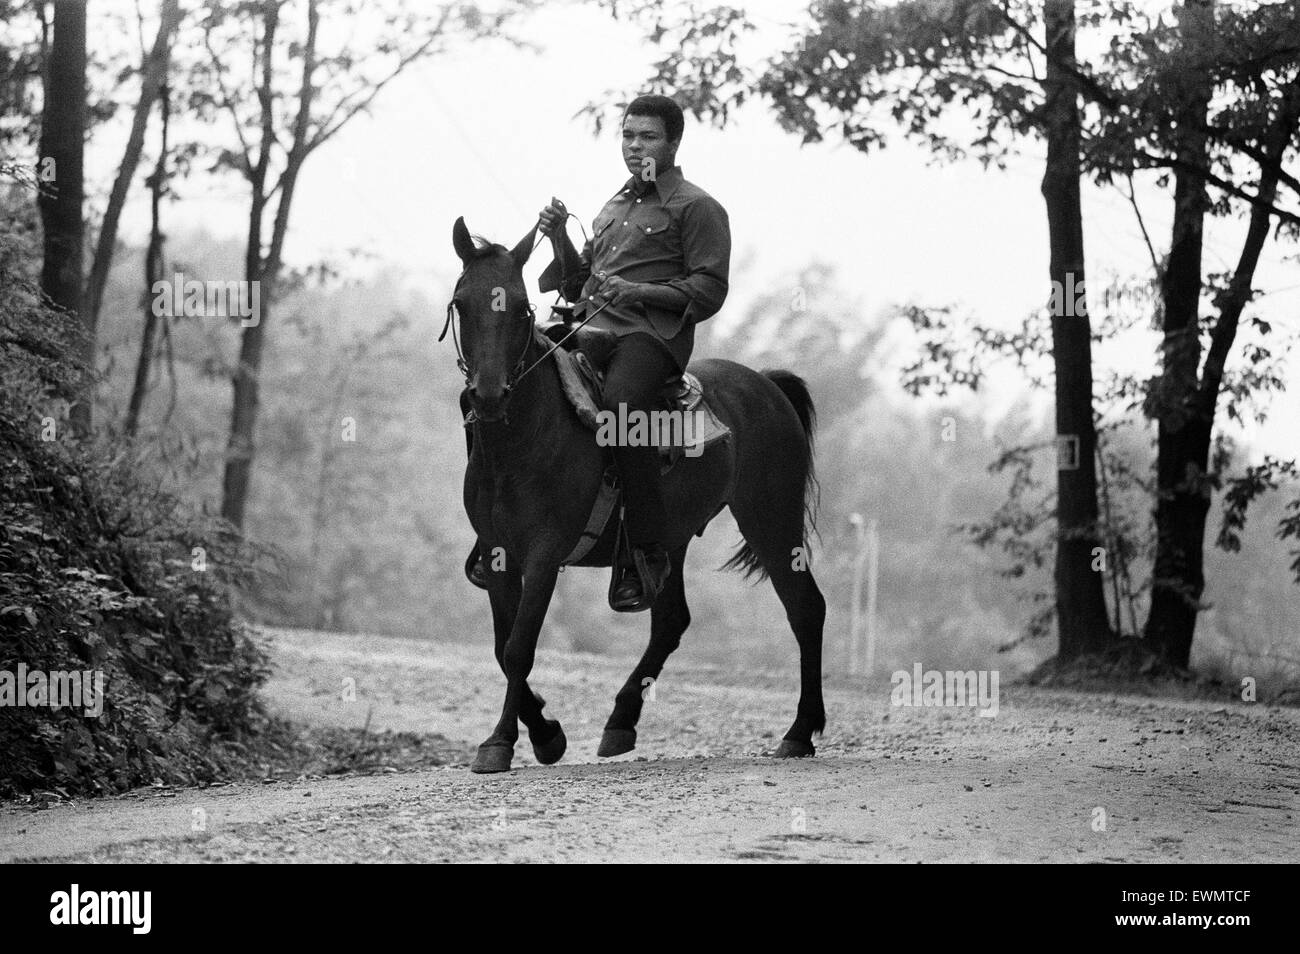 Muhammad Ali riding a horse in Deer Lake Pennsylvania. 5th July 1973 - Stock Image